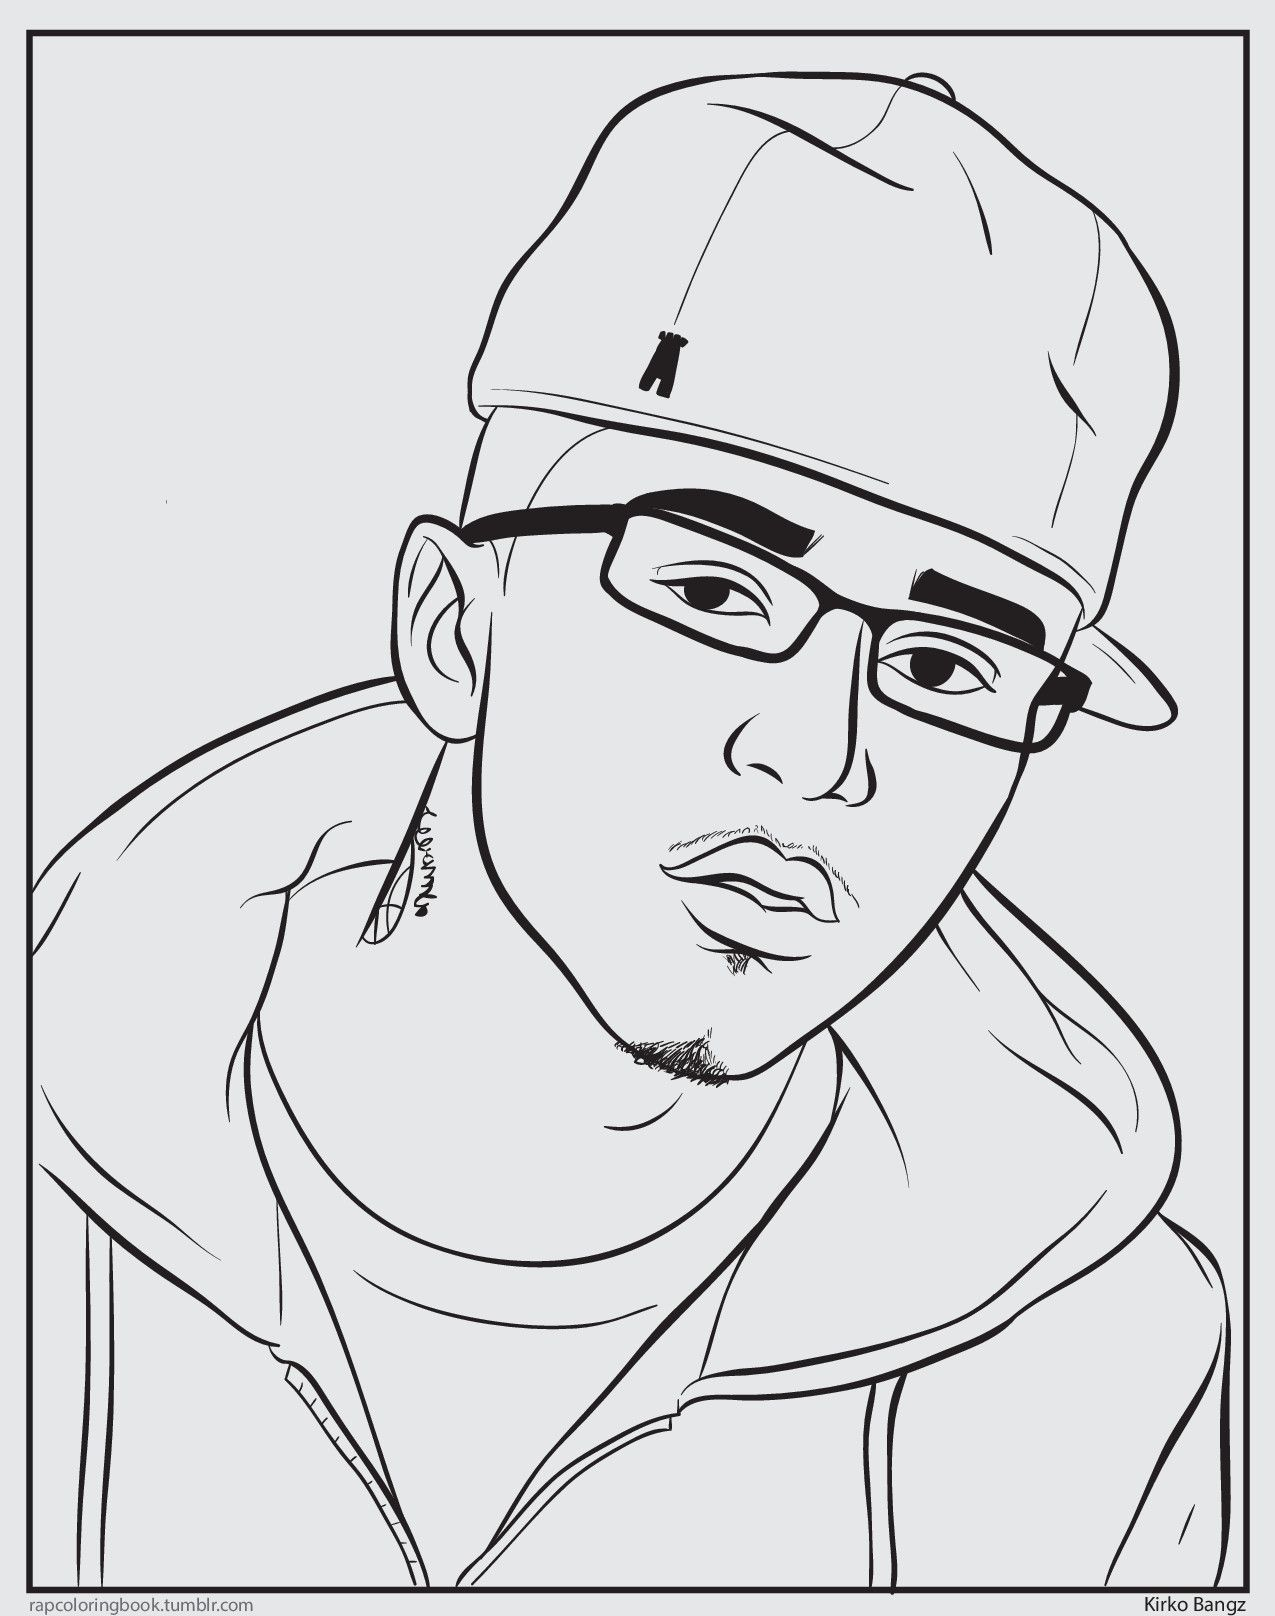 eminem coloring pages - photo#32